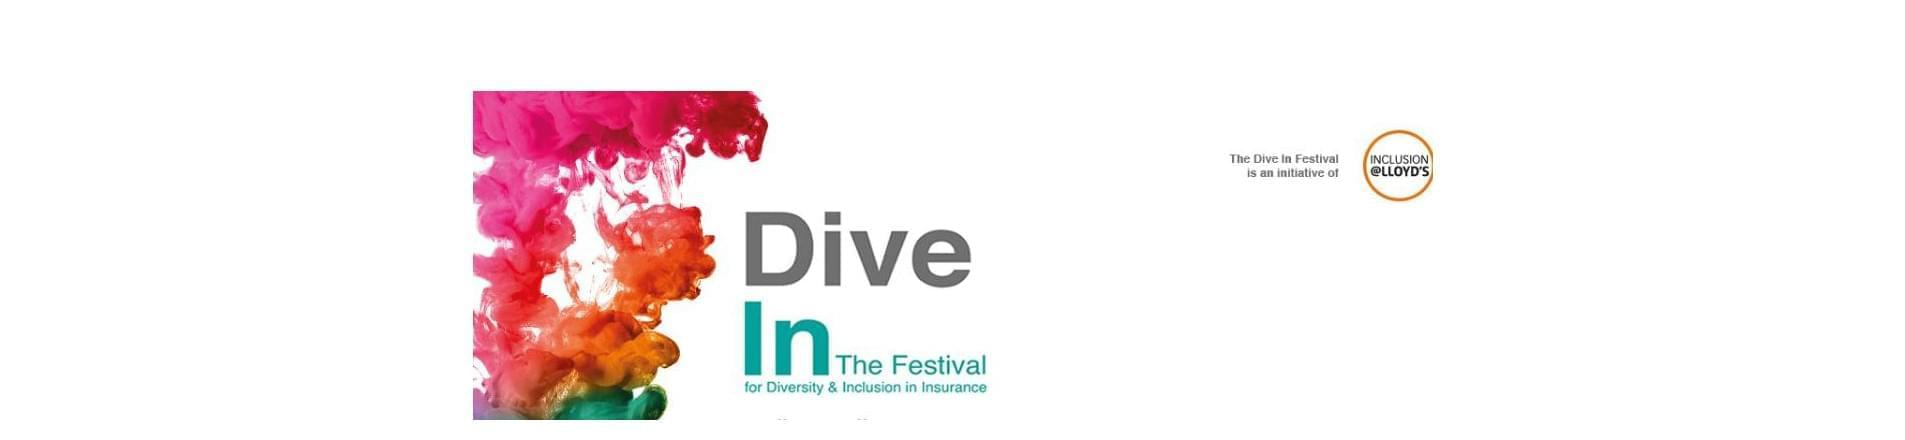 Dive In Festival Logo with the text 'Dive In The Festival for Diversity and Inclusion in Insurance'